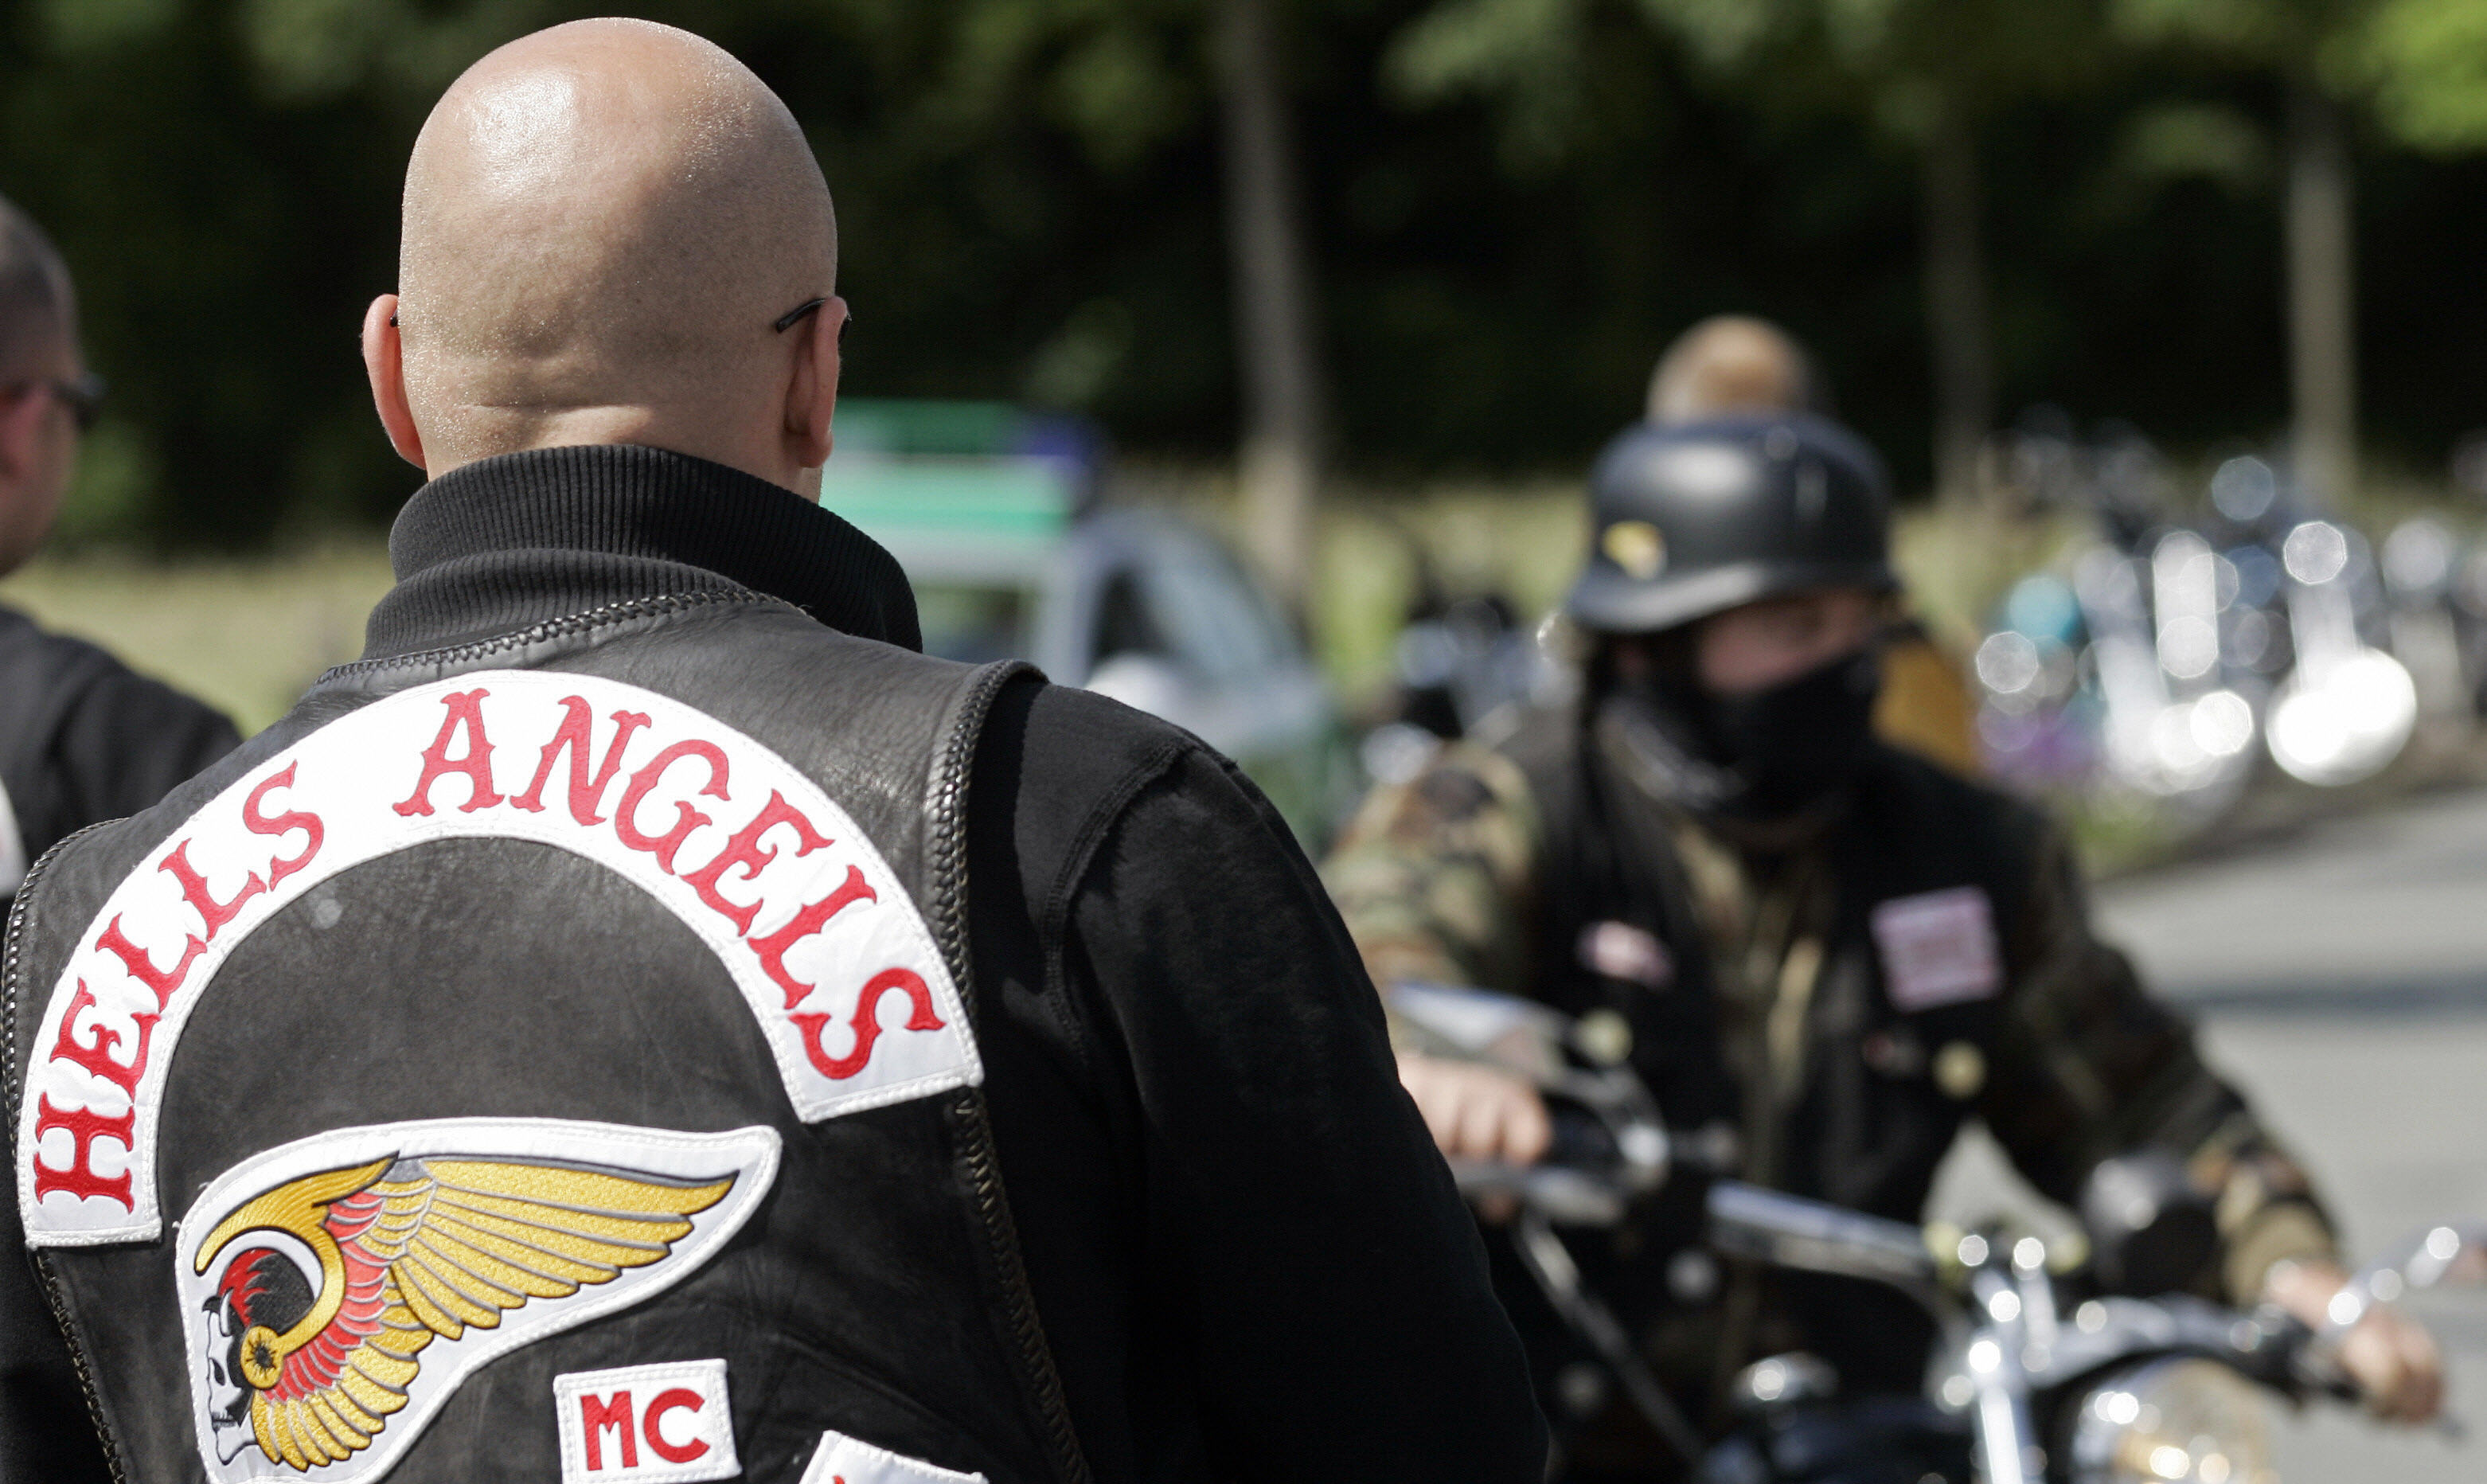 Hells Angels Members In Northern California Indicted On Murder